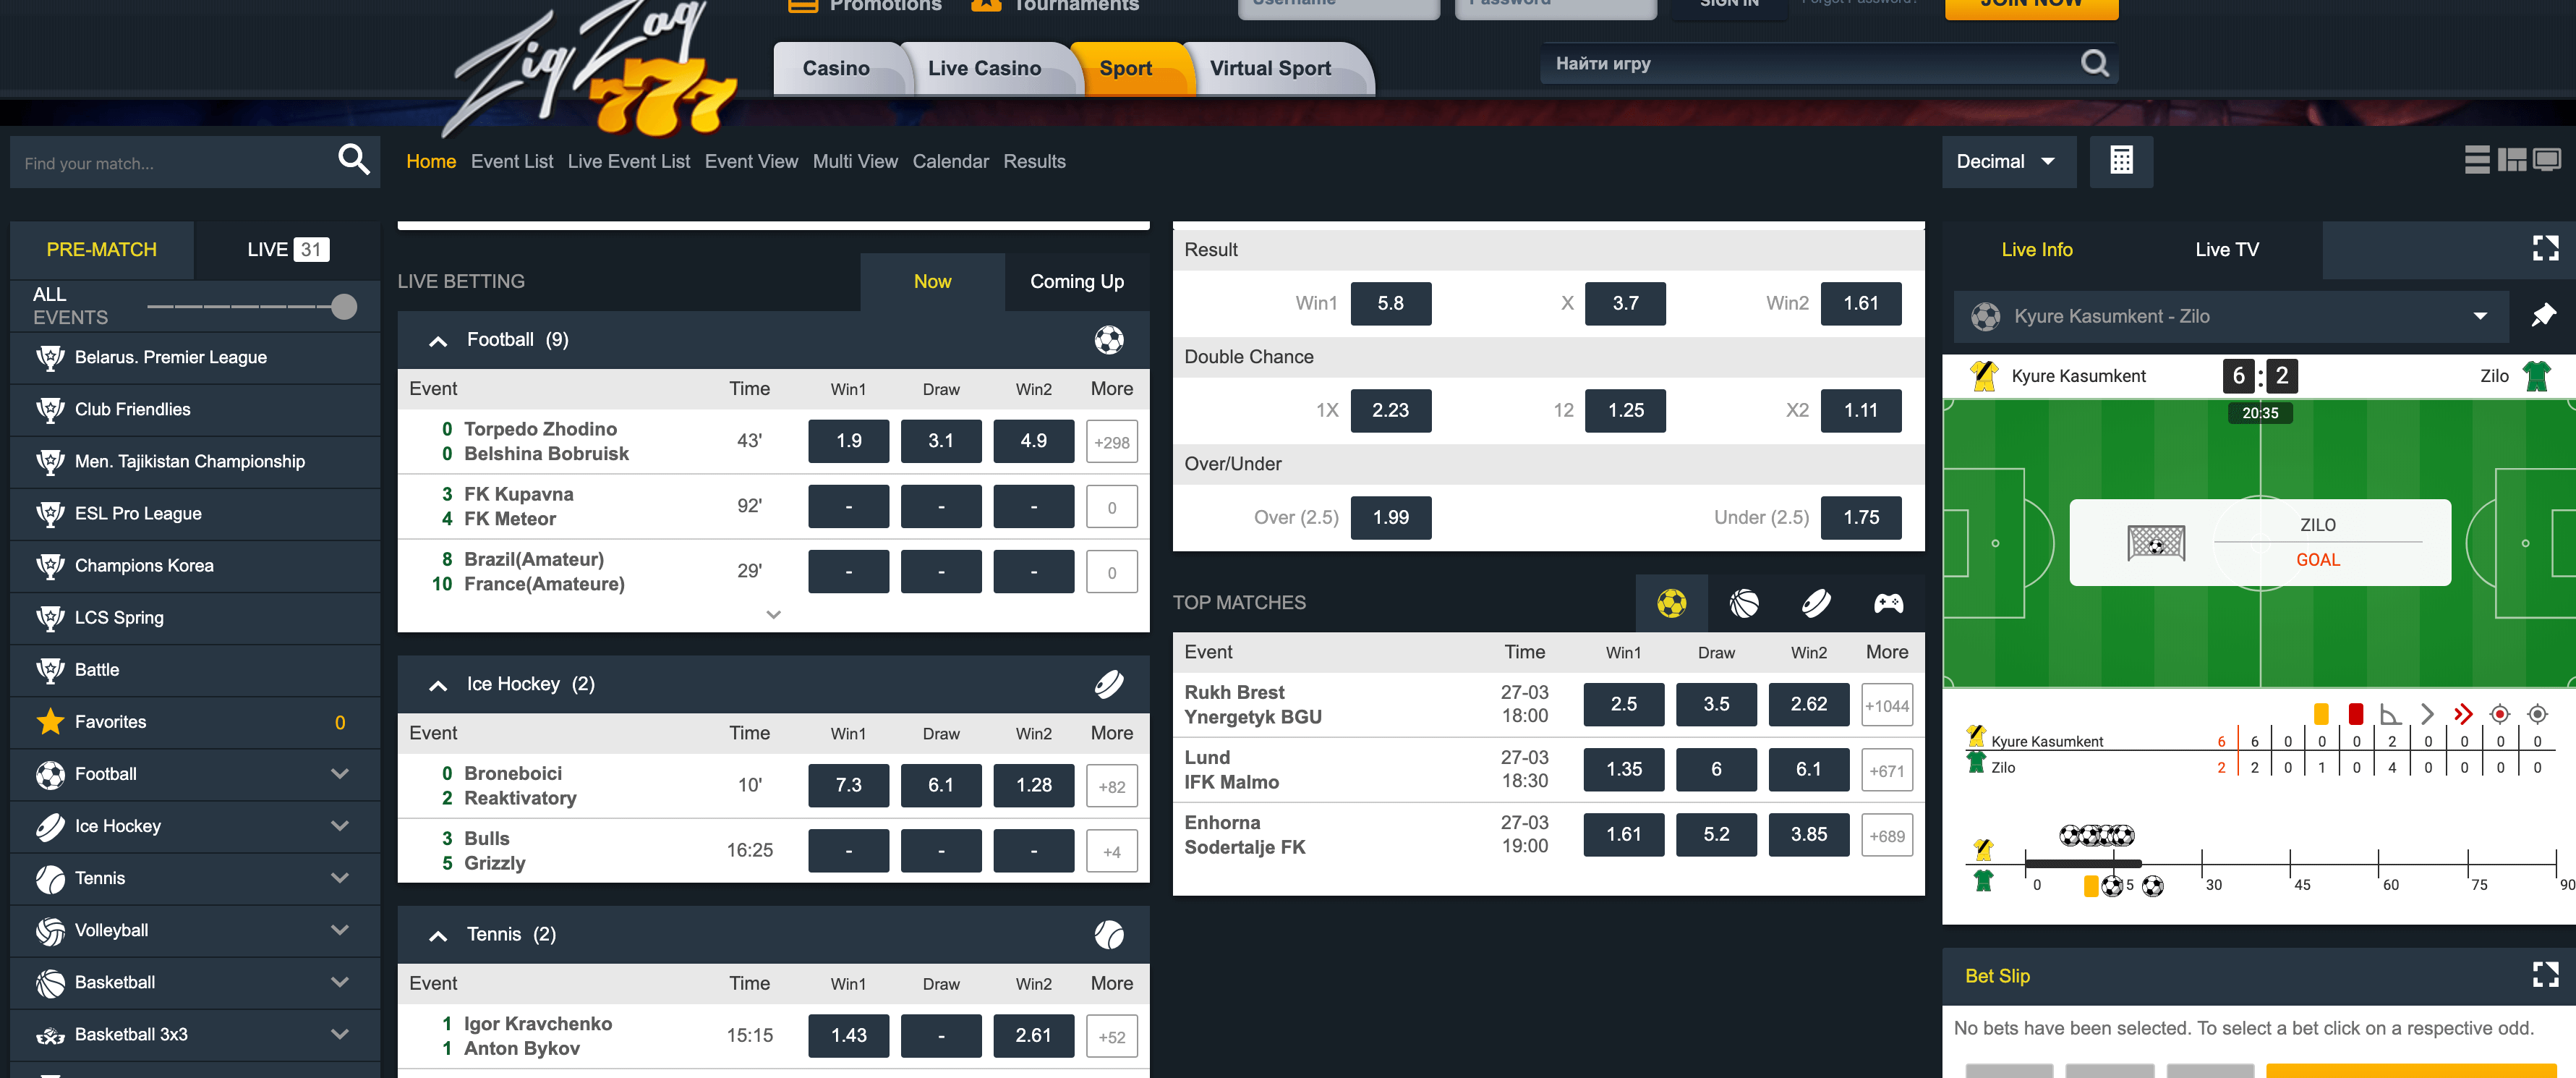 zigzag777 betting